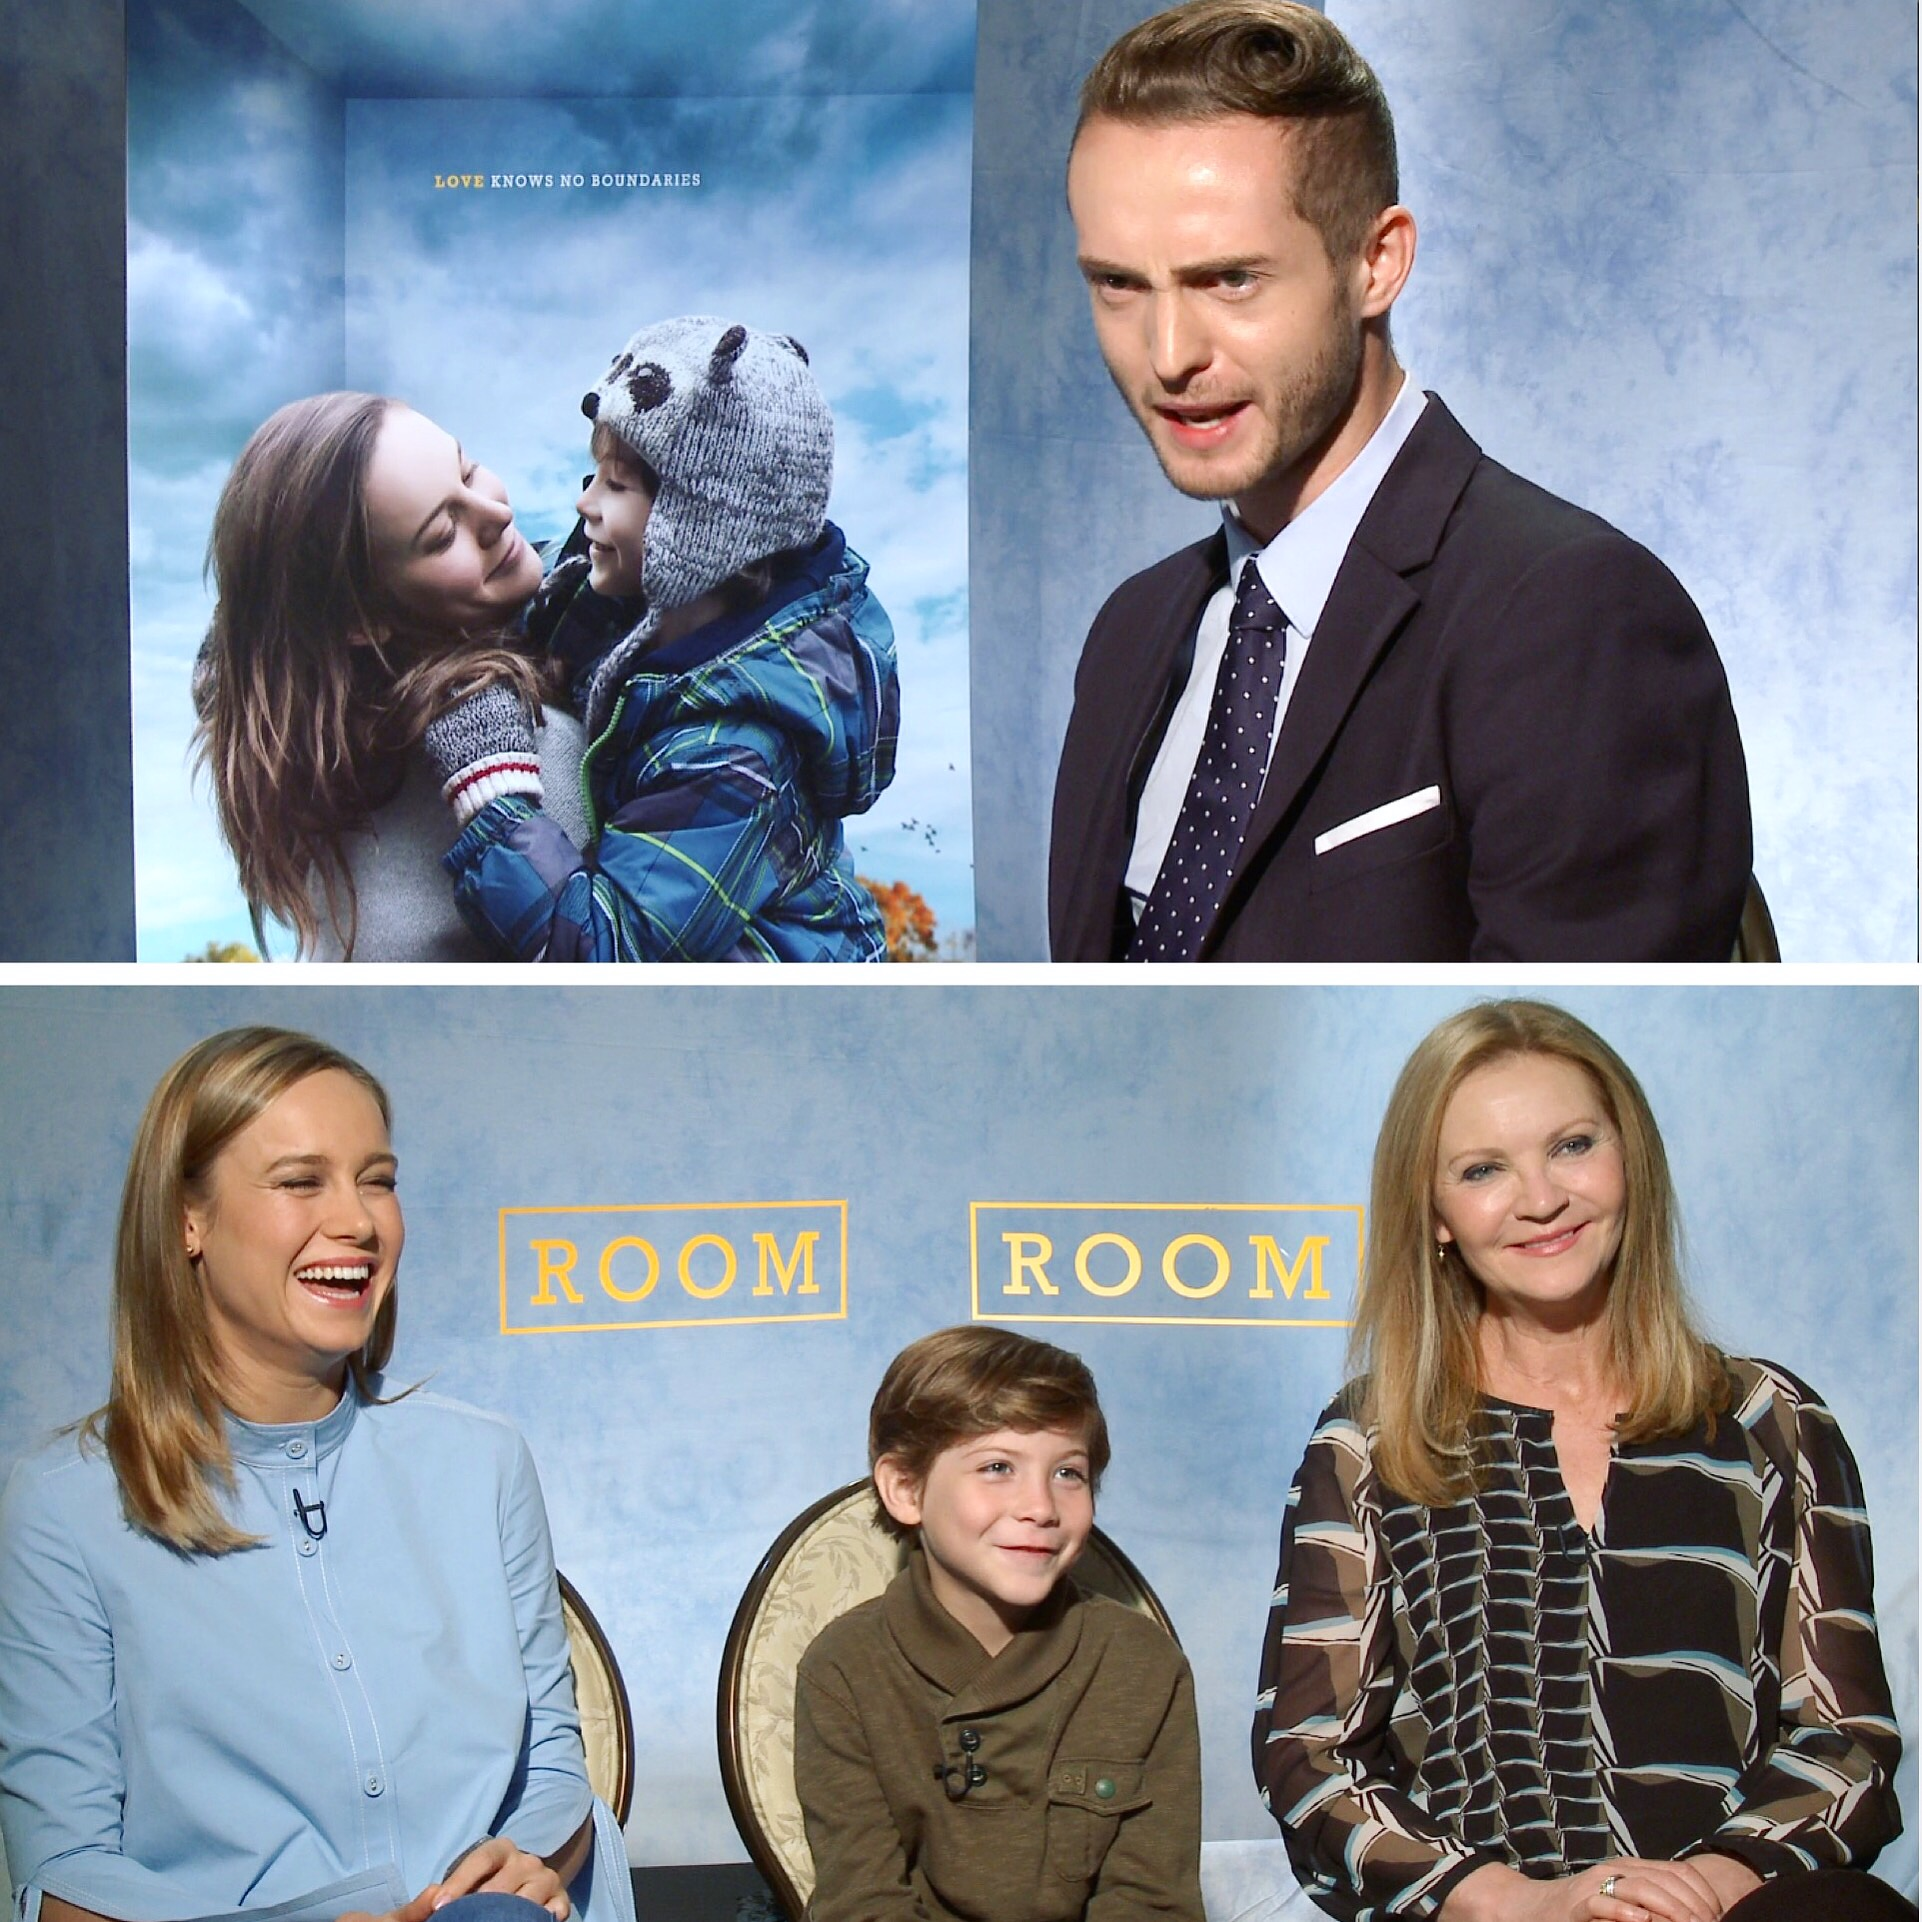 Pre-Oscars Interview for 'Room'.